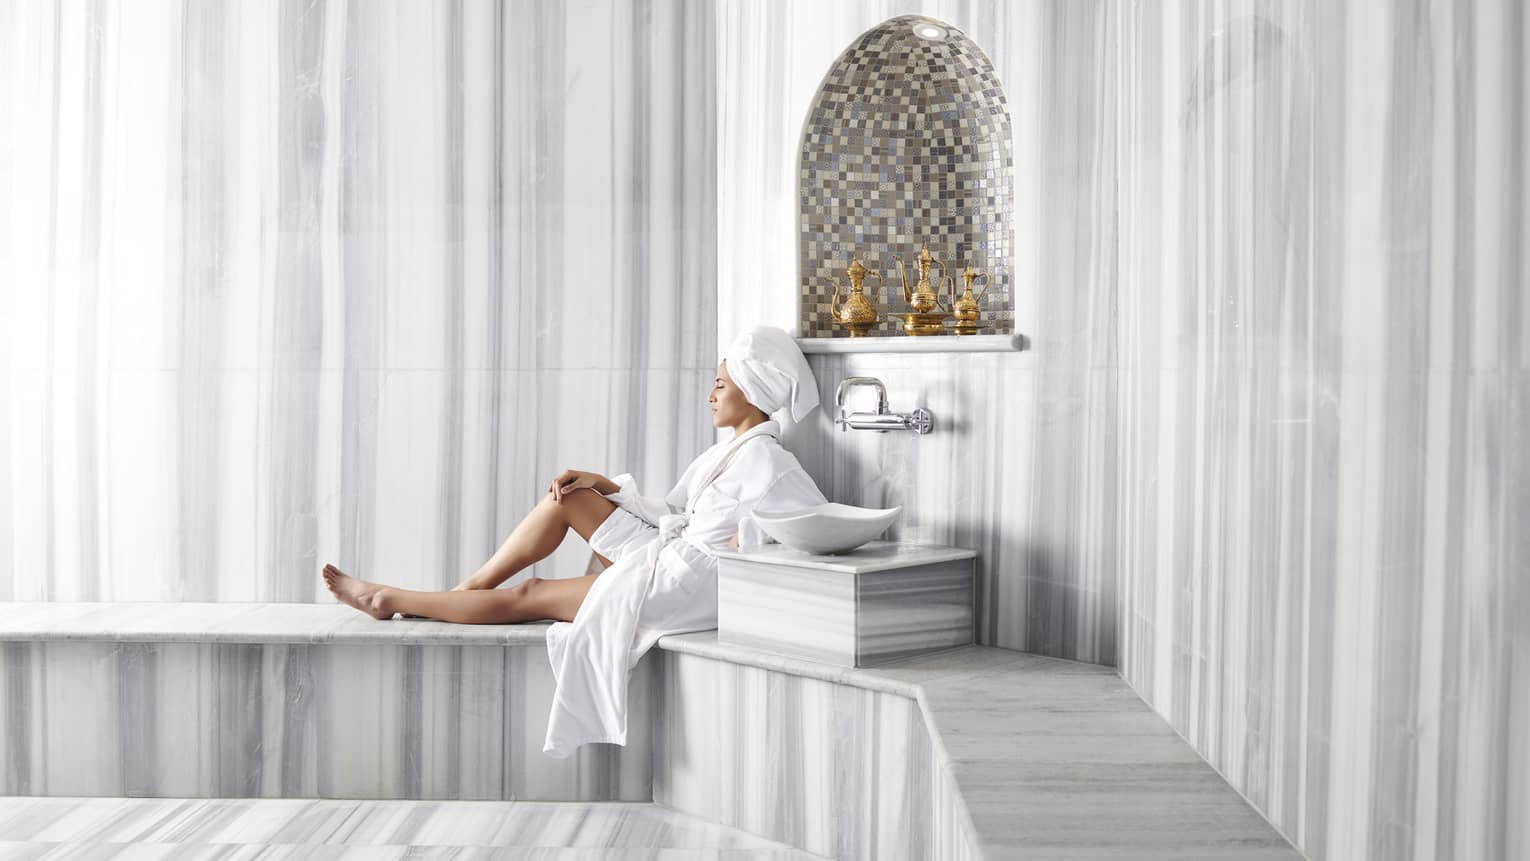 Woman wearing white bathrobe, towel around hair relaxes on bench in Hammam spa